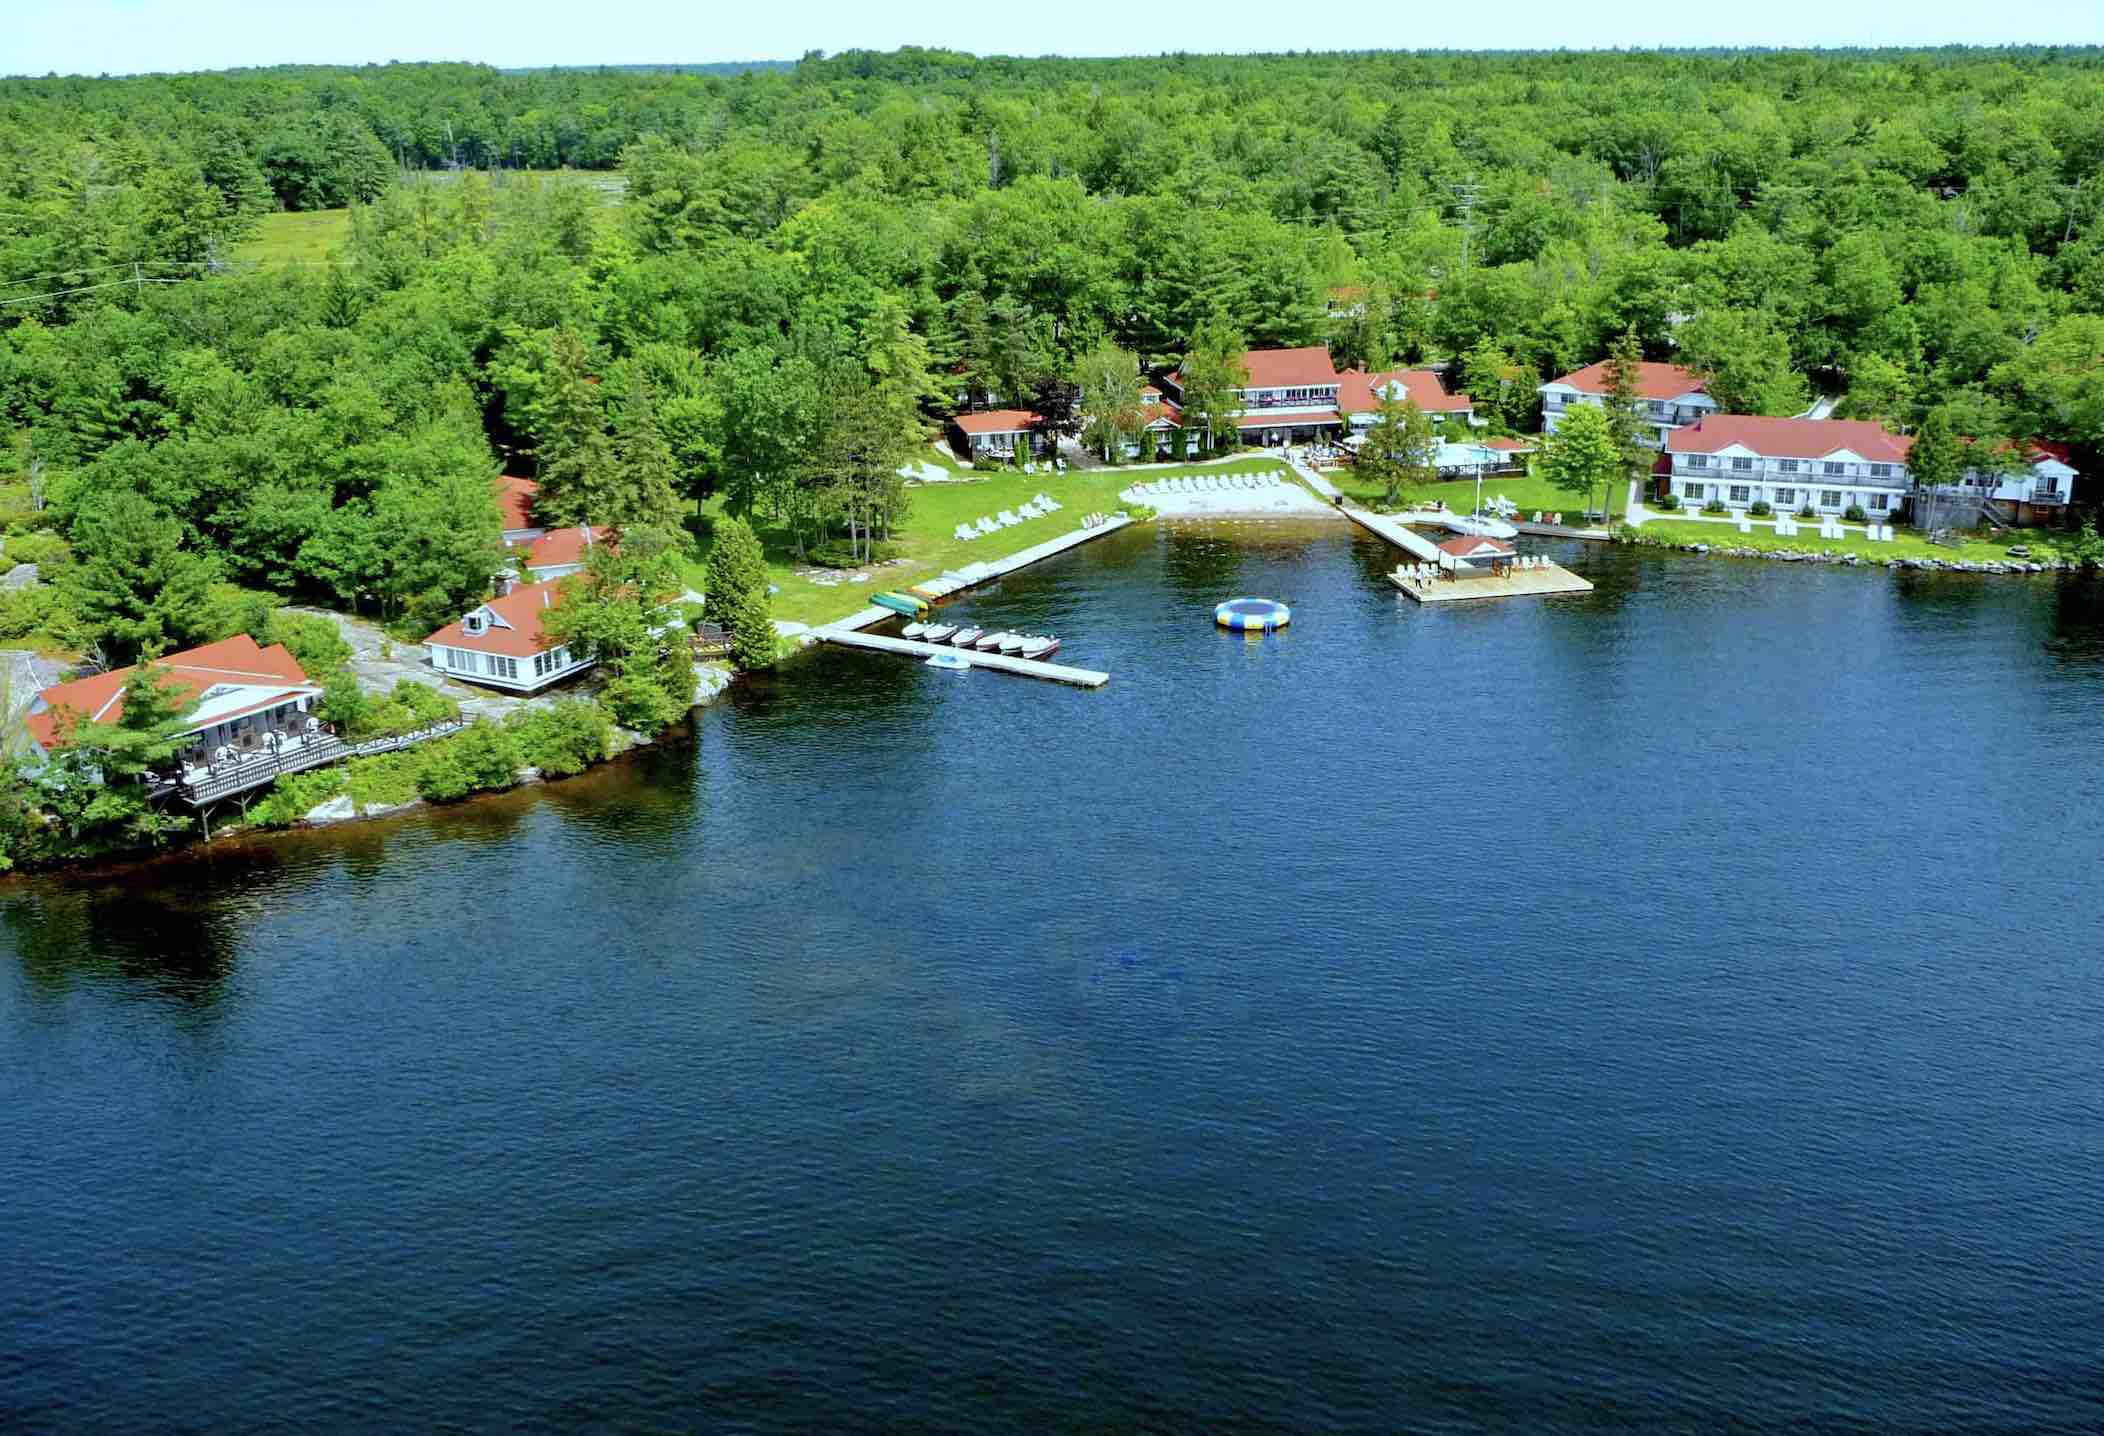 Port Severn Lodge seen here from the air is one of the top rated luxury Muskoka resorts